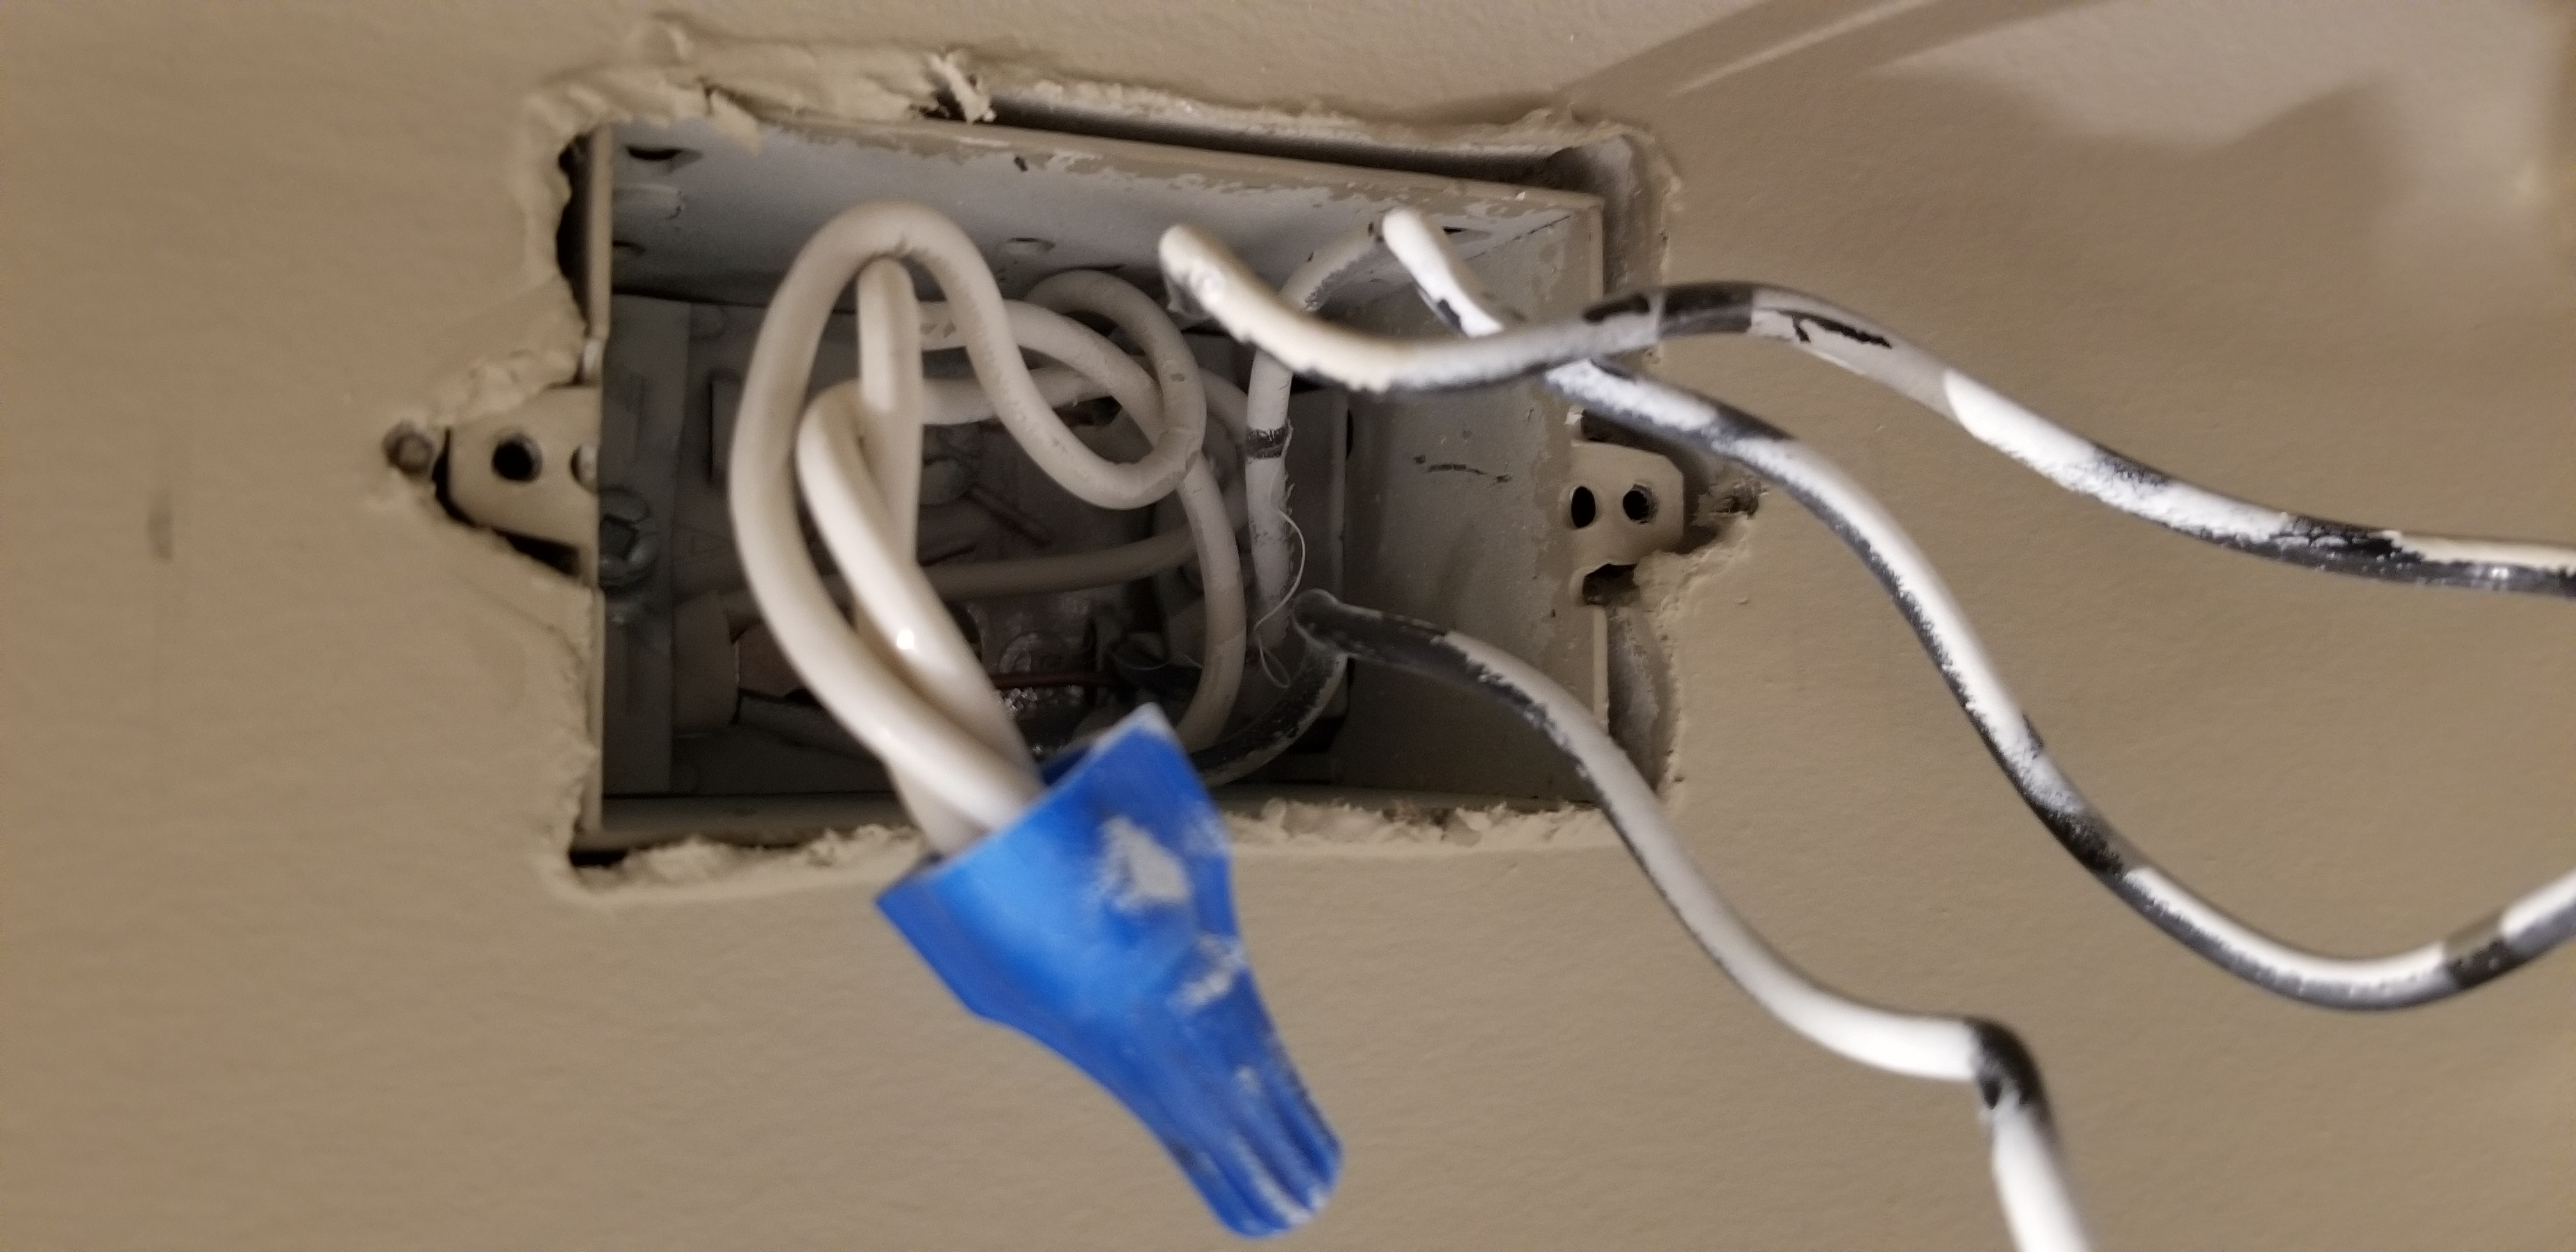 Installing Hs200 For A Single Pole Light Switch With 3 Black Wires